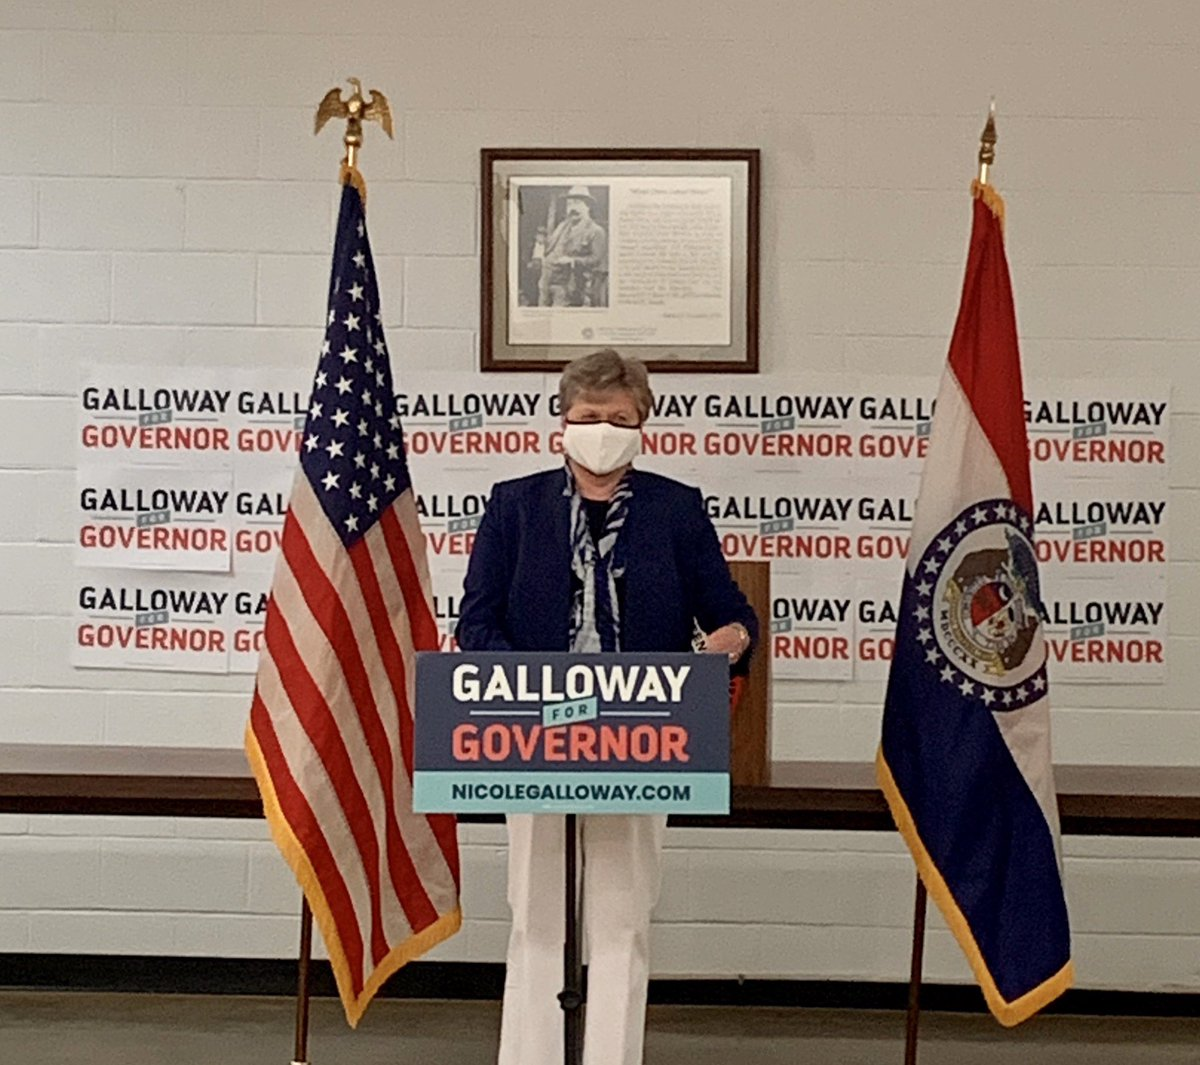 Excited to be joining @nicolergalloway for an event in Cape Girardeau today!  Missourians all across the state deserve real, authentic leadership. It's why I'm running for Congress & why Auditor Galloway is running for Governor.   We're honored to be in this fight with her. https://t.co/OfiqnzOxwP